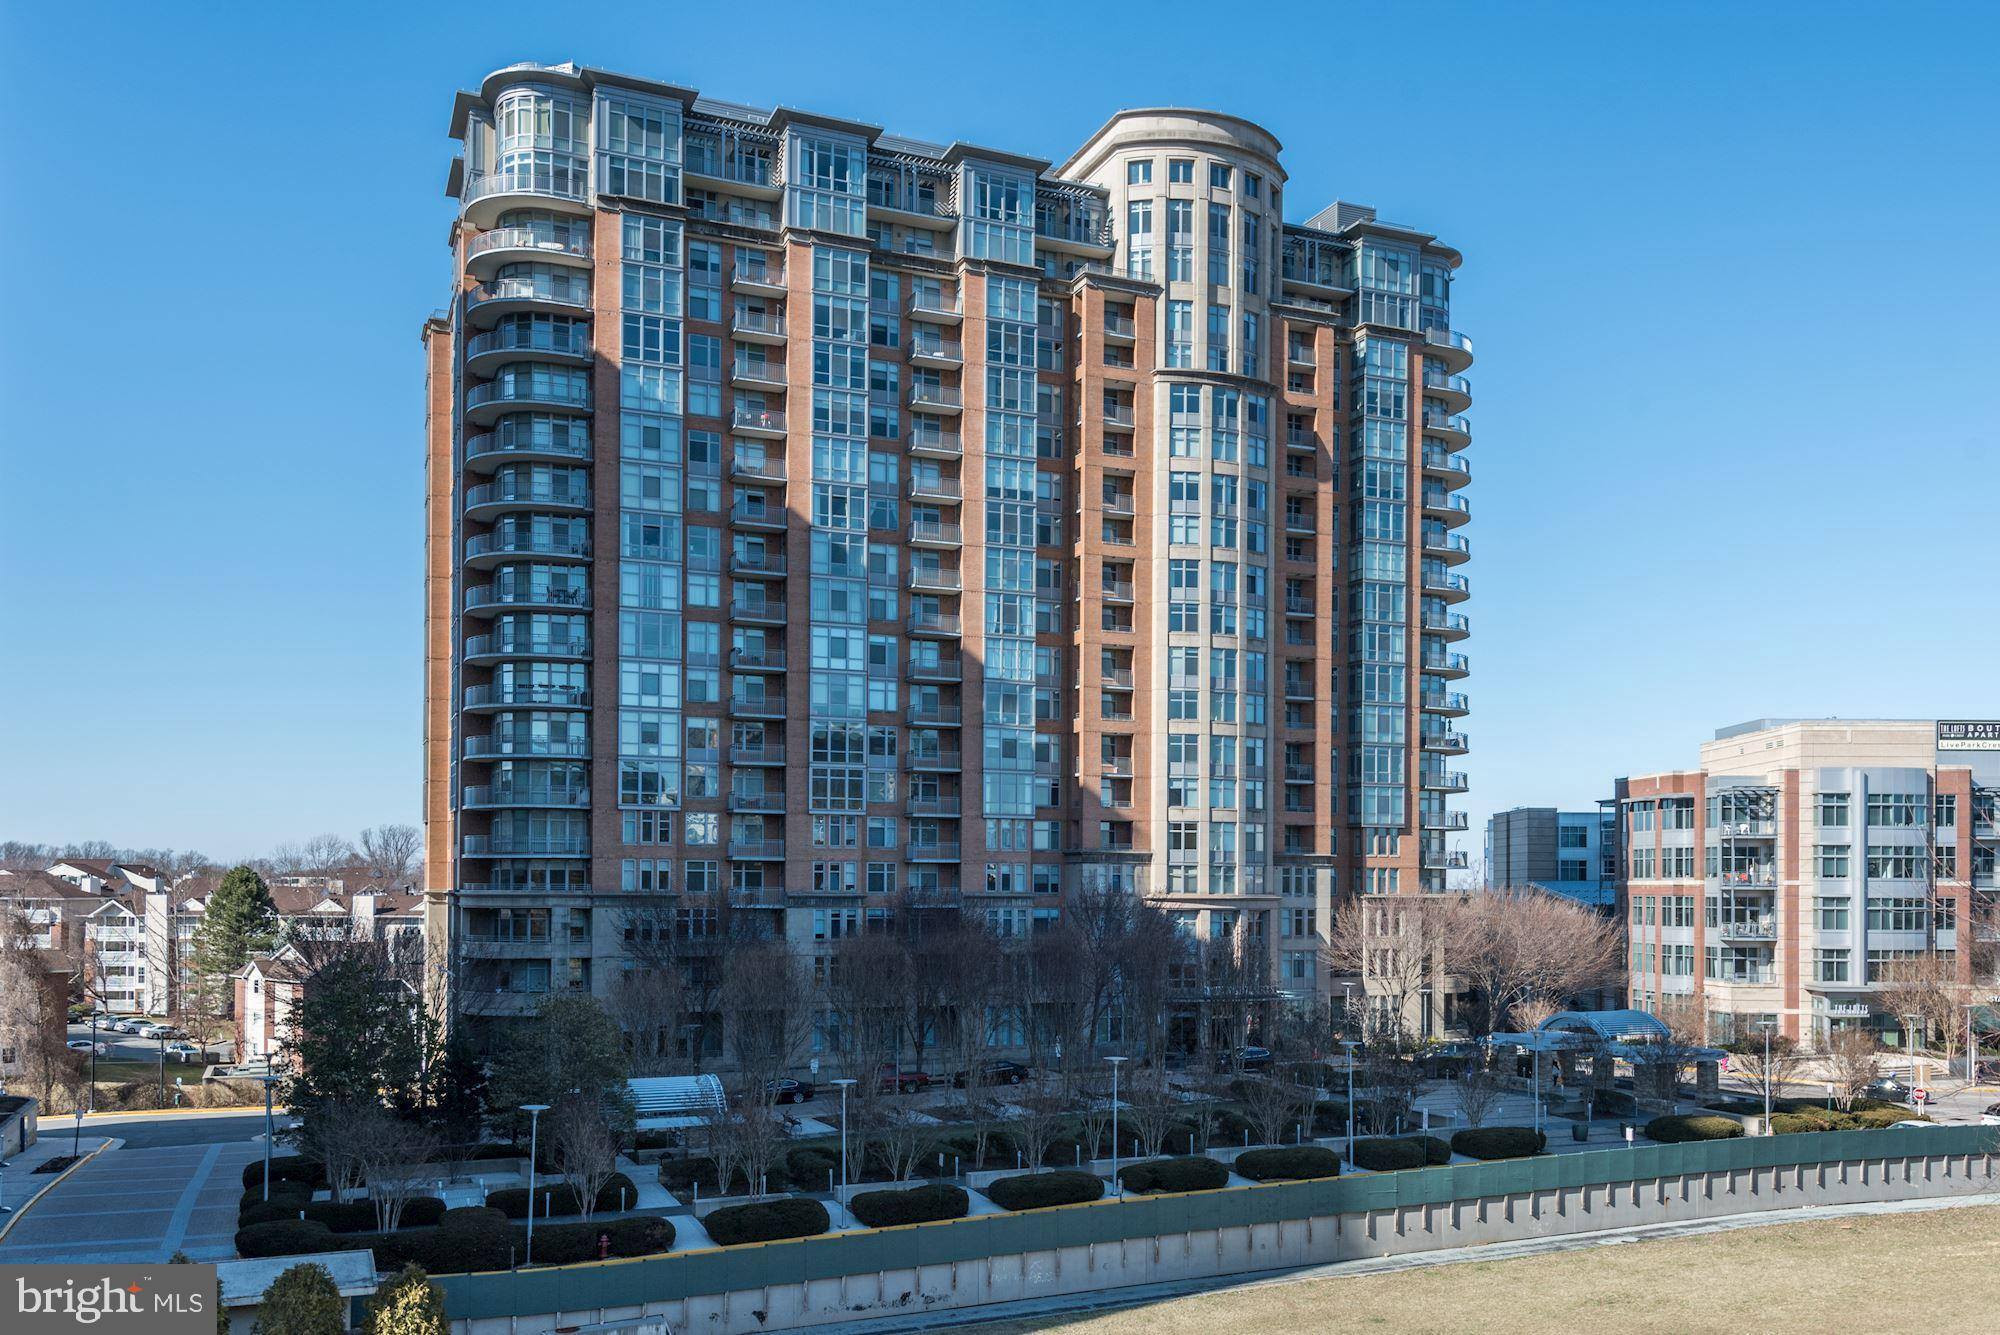 Tenant-occupied through July 31.  Tenant willing to vacate early if you wish to move in sooner than the end of July.  14th Floor Unit on the sunrise side of luxury One Park Crest in the heart of Tysons.  Expansive, open views to Maryland and Washington DC...Privacy and views that will last since the north, north-east directions will have no new high-rise buildings.  Unit features a wide living area with floor to ceiling windows plus a balcony off to the side.  A large walk-in closet to the left as soon as you enter the unit, doubles as a storage room!  Gourmet kitchen with stainless steel appliances also has an island.  Each of the 2 bedrooms has an attached bath.  The kitchen and living room feature hardwood floors while each bedroom has great carpeting.  The bathroom and walk-in closet of the primary bedroom are very spacious - Primary bathroom has dual sink, soaking tub and shower area.  Two parking spaces on P-4 level (18 and 19) convey with the unit.  One Park Crest is awash with amenities from the stately lobby area with two guest suites available for nightly fee on first come first served basis, exercise room, meeting room, courtyard - To the 18th floor swanky club room, west facing rooftop for fabulous year sunsets and adjacent roof top dipping pool.  Tysons Galleria mall is just a couple of blocks away off Park Run Dr.  The new 'Boro' development containing the mid-Atlantic region's largest Wholefoods store, movie theater, restaurants and shops is 0.6 miles up along Westpark Drive.  The Tysons Corner Silver metrorail station is 0.9 miles away with two commuter bus stops within 2 blocks of the building that take you to Tysons metrorail station.  Fast growing Tysons is uniquely situated in northern Virginia - IAD Dulles international airport is a quick 12 miles to the west; easily accessed via the nearby Dulles Toll Road.  Down town Washington DC is 12 miles south east.  The Capital Beltway I-495 is just over a mile away.